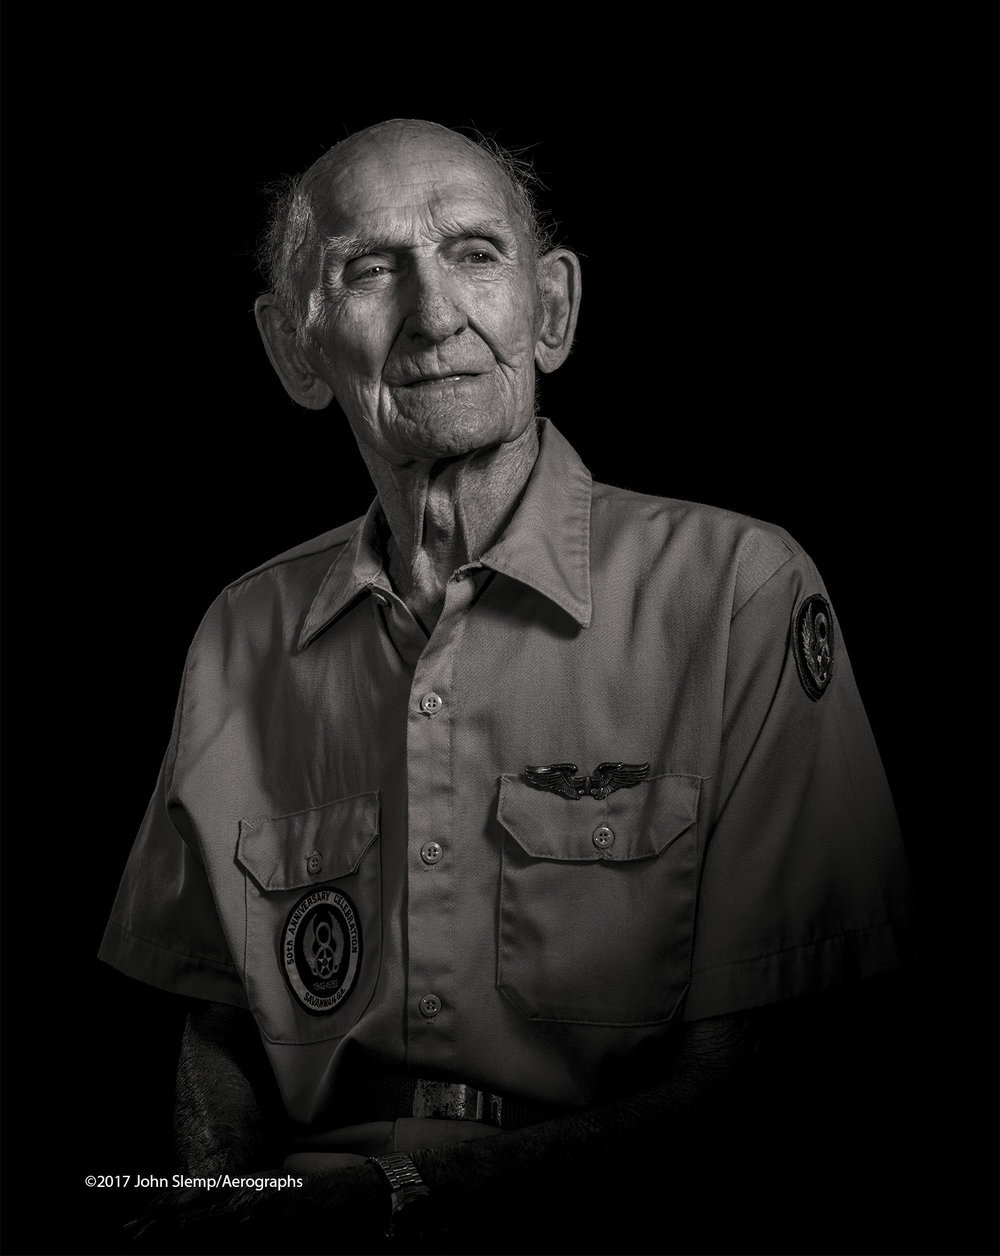 WWII B-17 waist gunner Billy Lewis, photographed at his home in Baxley, Georgia.